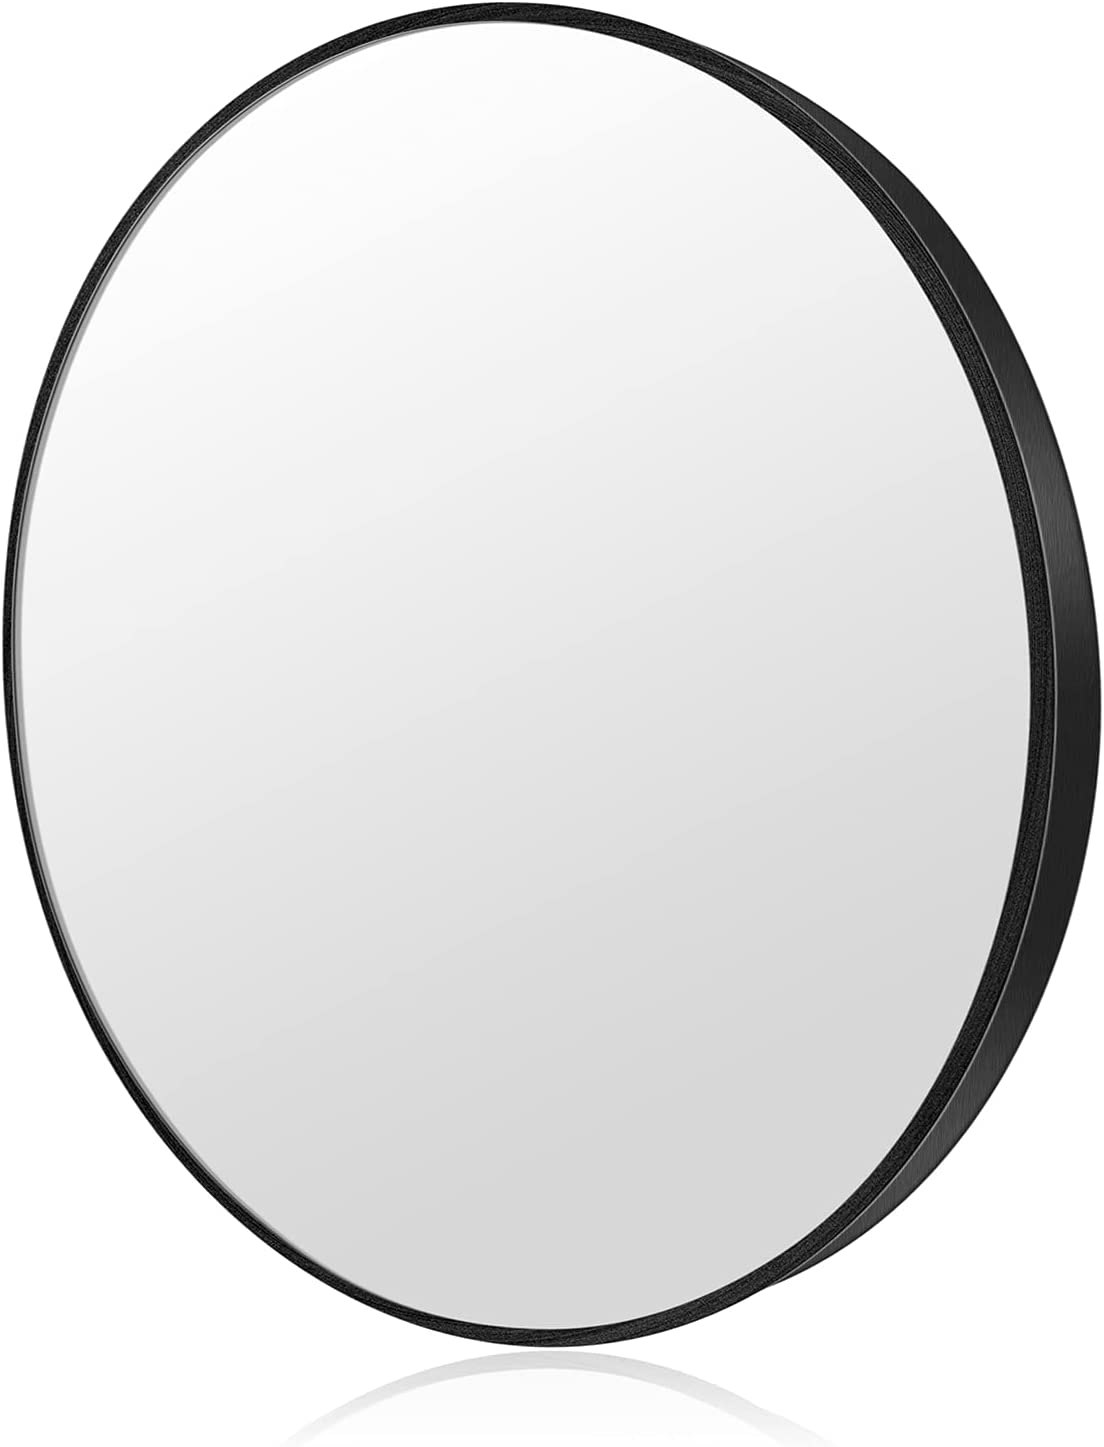 Black Circle Wall Mirror 28 Inch Round Wall Mirror - Brushed Metal Frame Round Wall Mirror for Entry, Dining,Living Rooms ,Bathroom ,Wall Decor Vanity Mirror